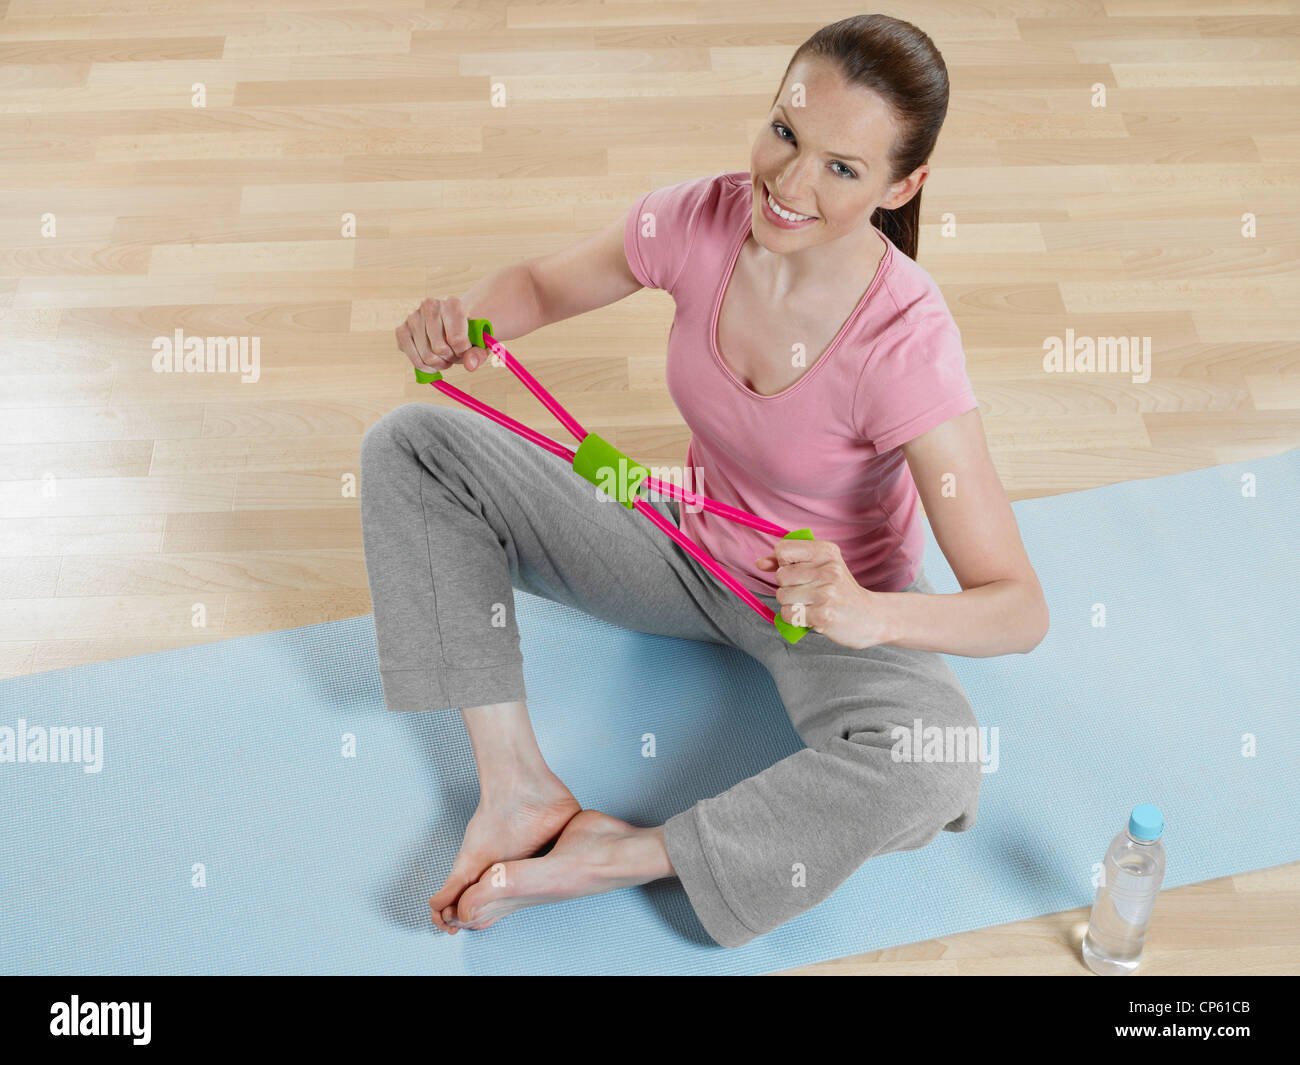 Young woman doing exercise, smiling, portrait - Stock Image